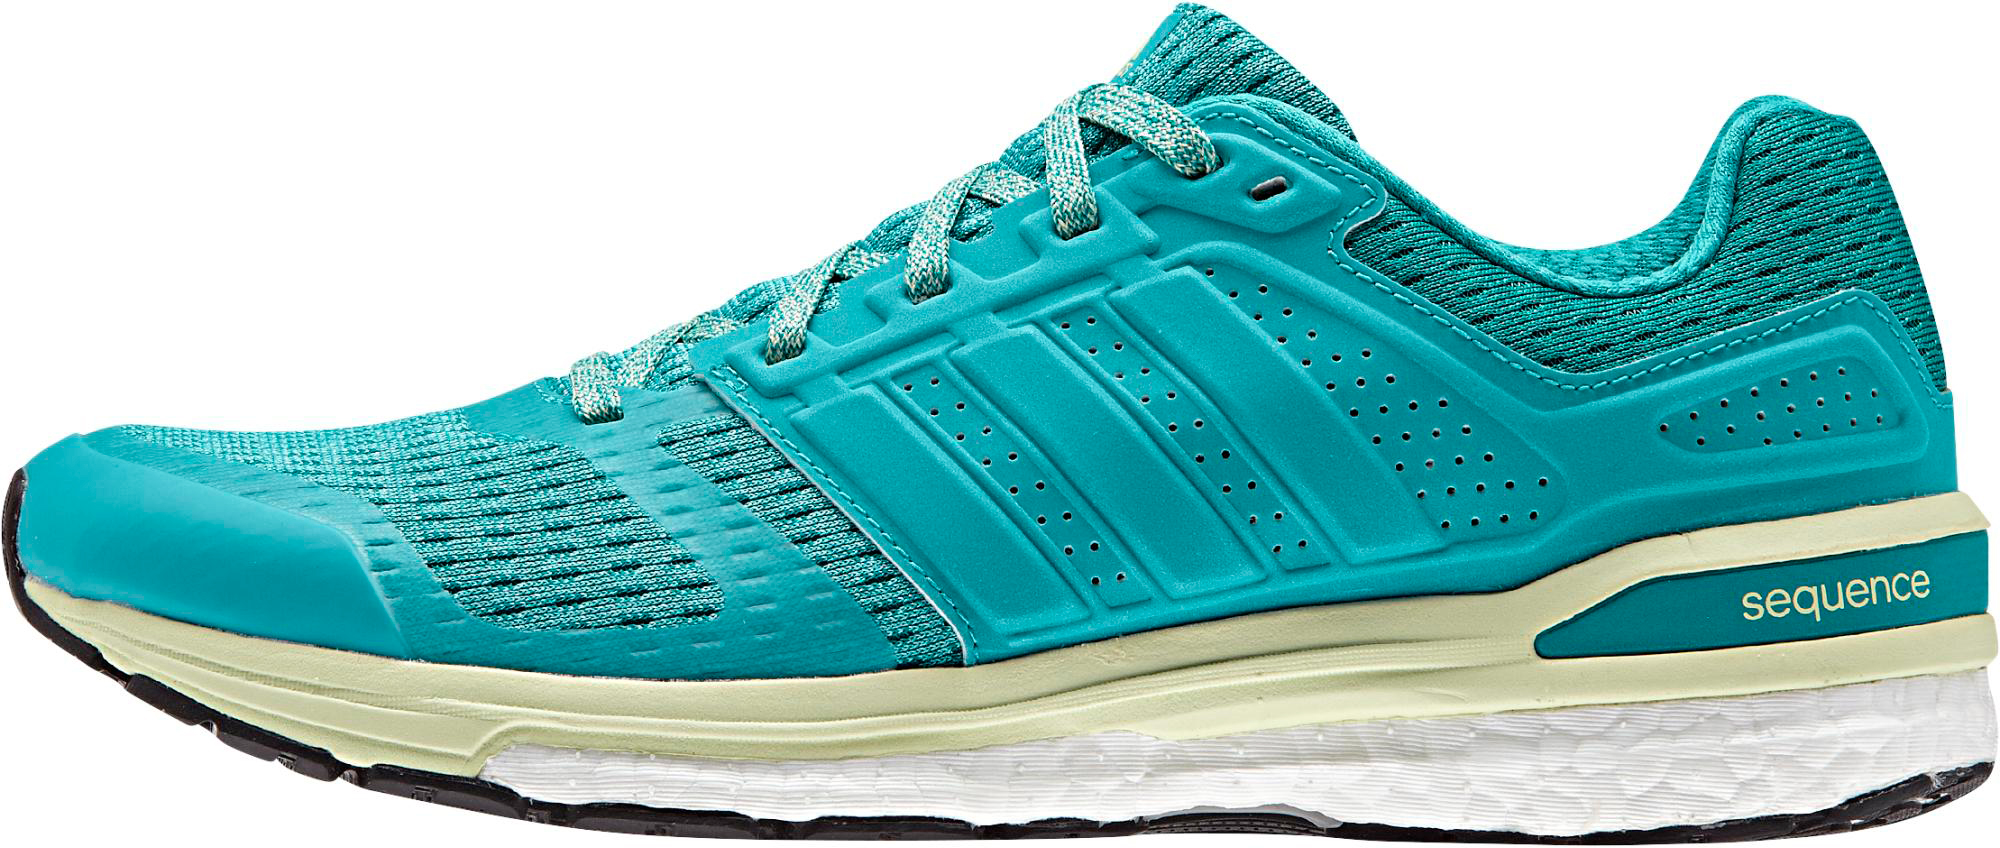 wiggle.com | adidas Women's Supernova Sequence Boost 8 Shoes ...